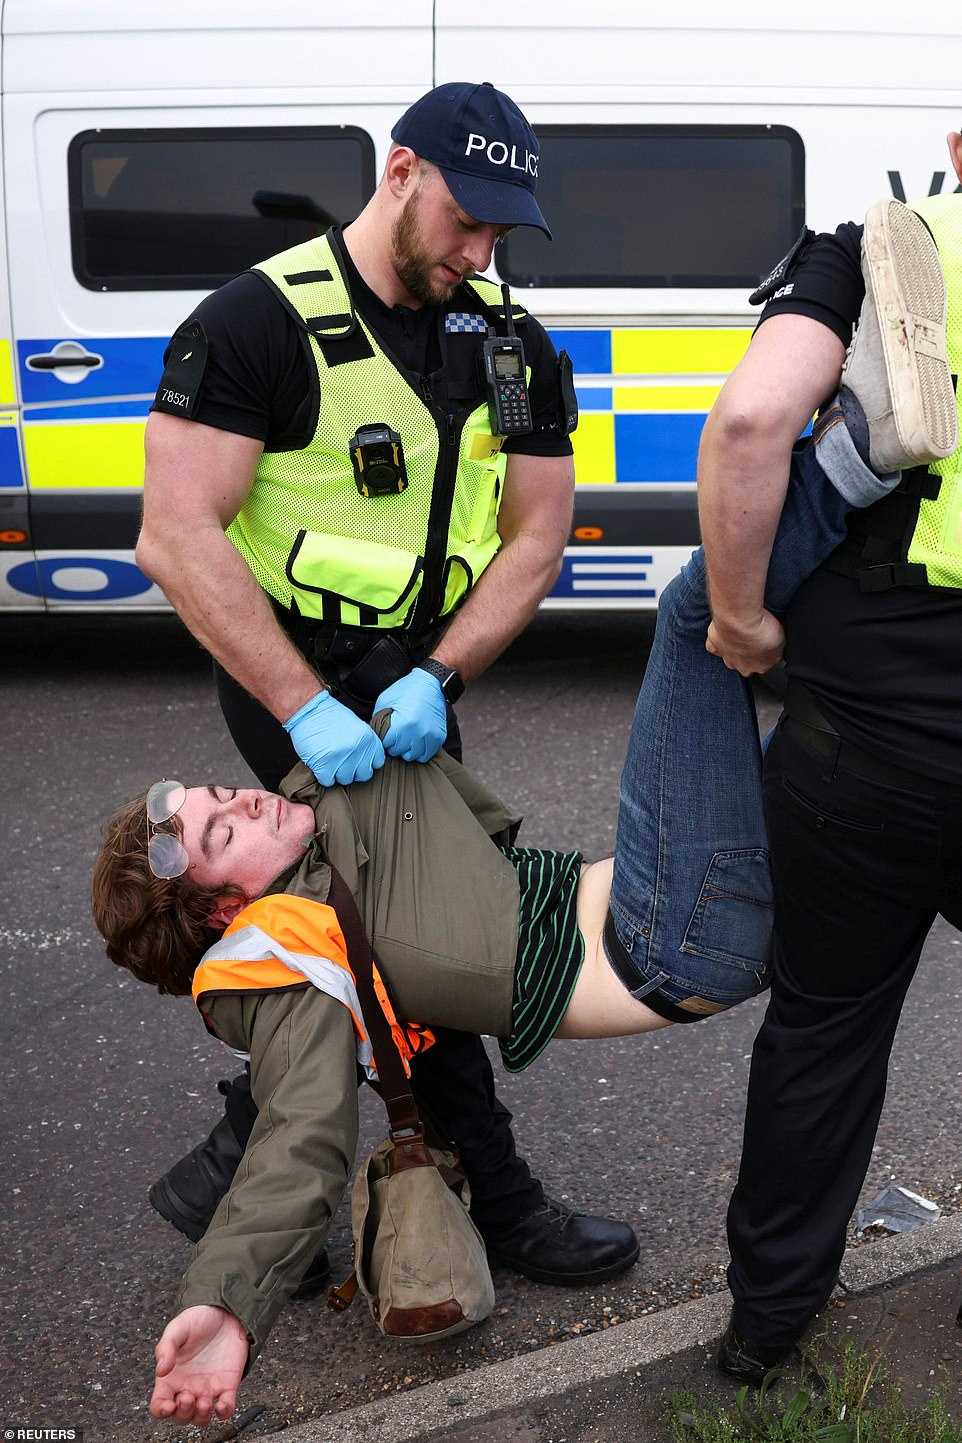 Police officers detain a man as Insulate Britain activists block a roundabout at junction 31 of the M25 in Thurrock today